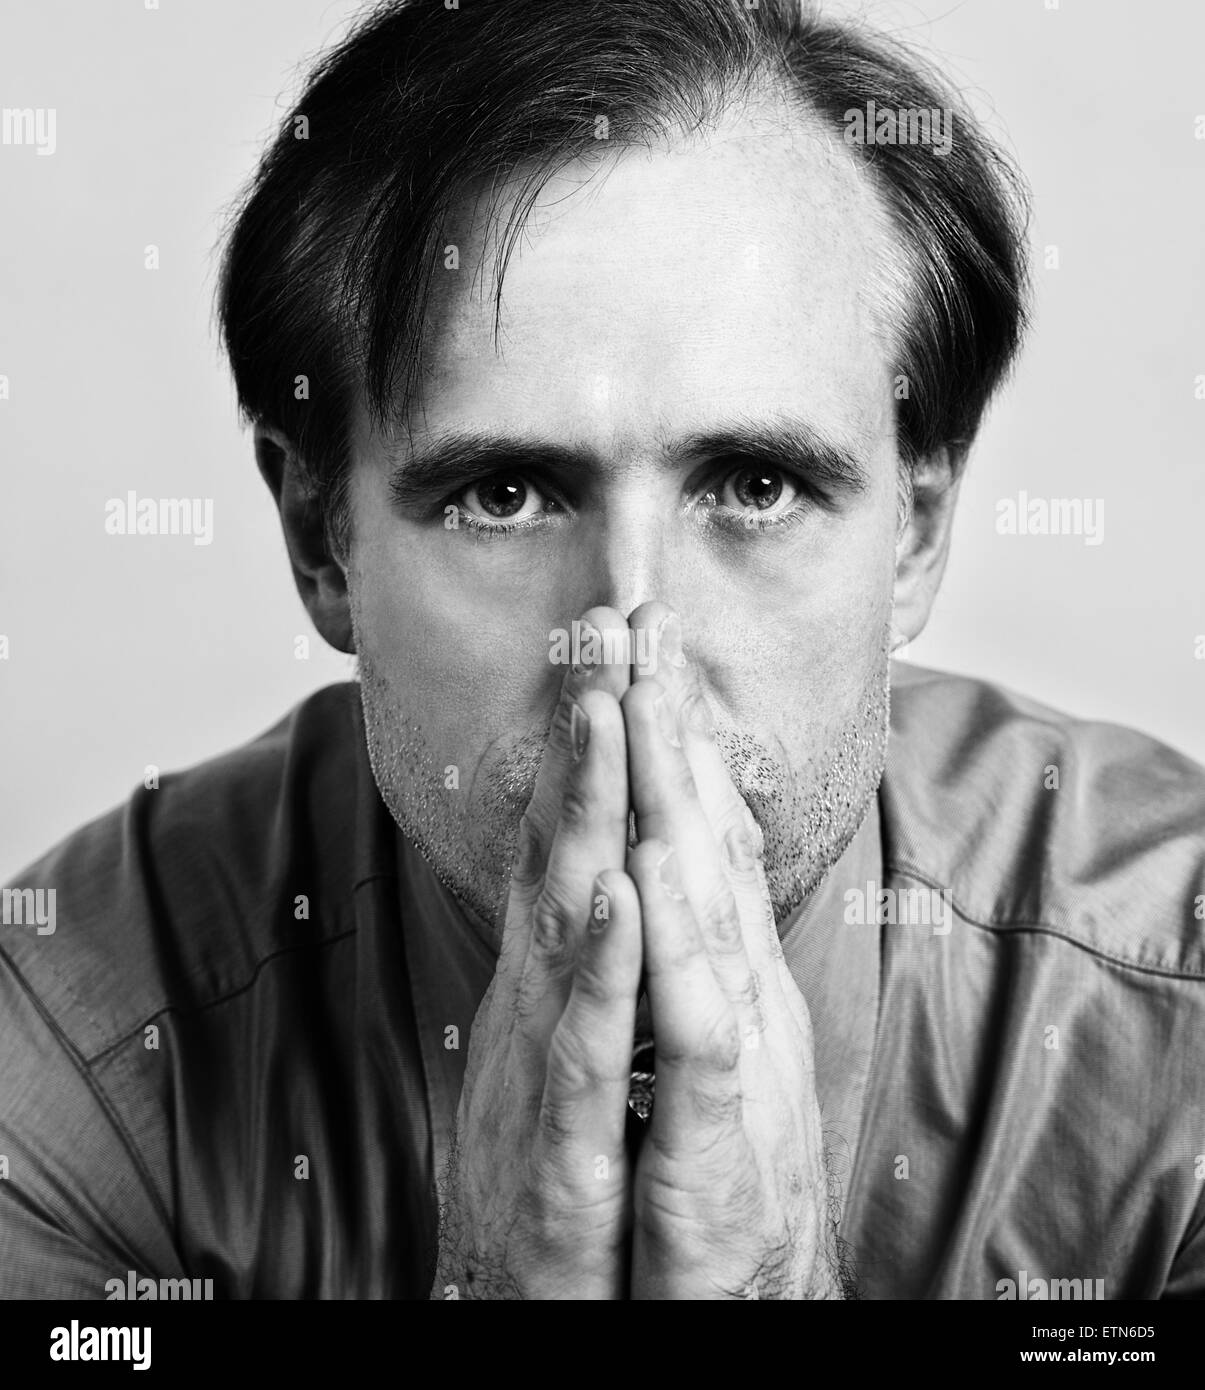 Close-up portrait of a Mid adult man avec ses mains devant sa bouche Photo Stock